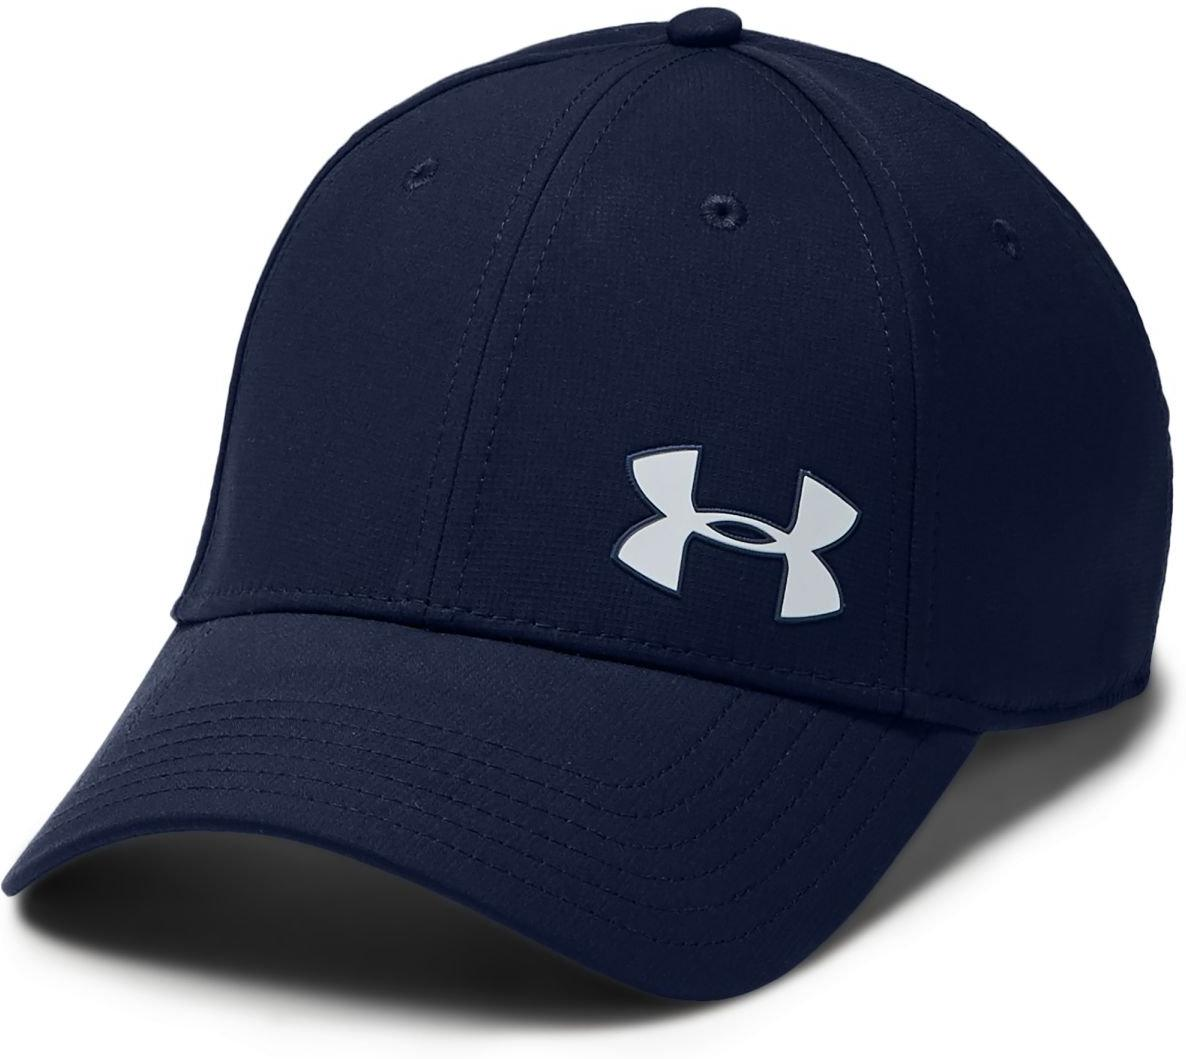 Cap Under Armour Men s Golf Headline Cap 3.0